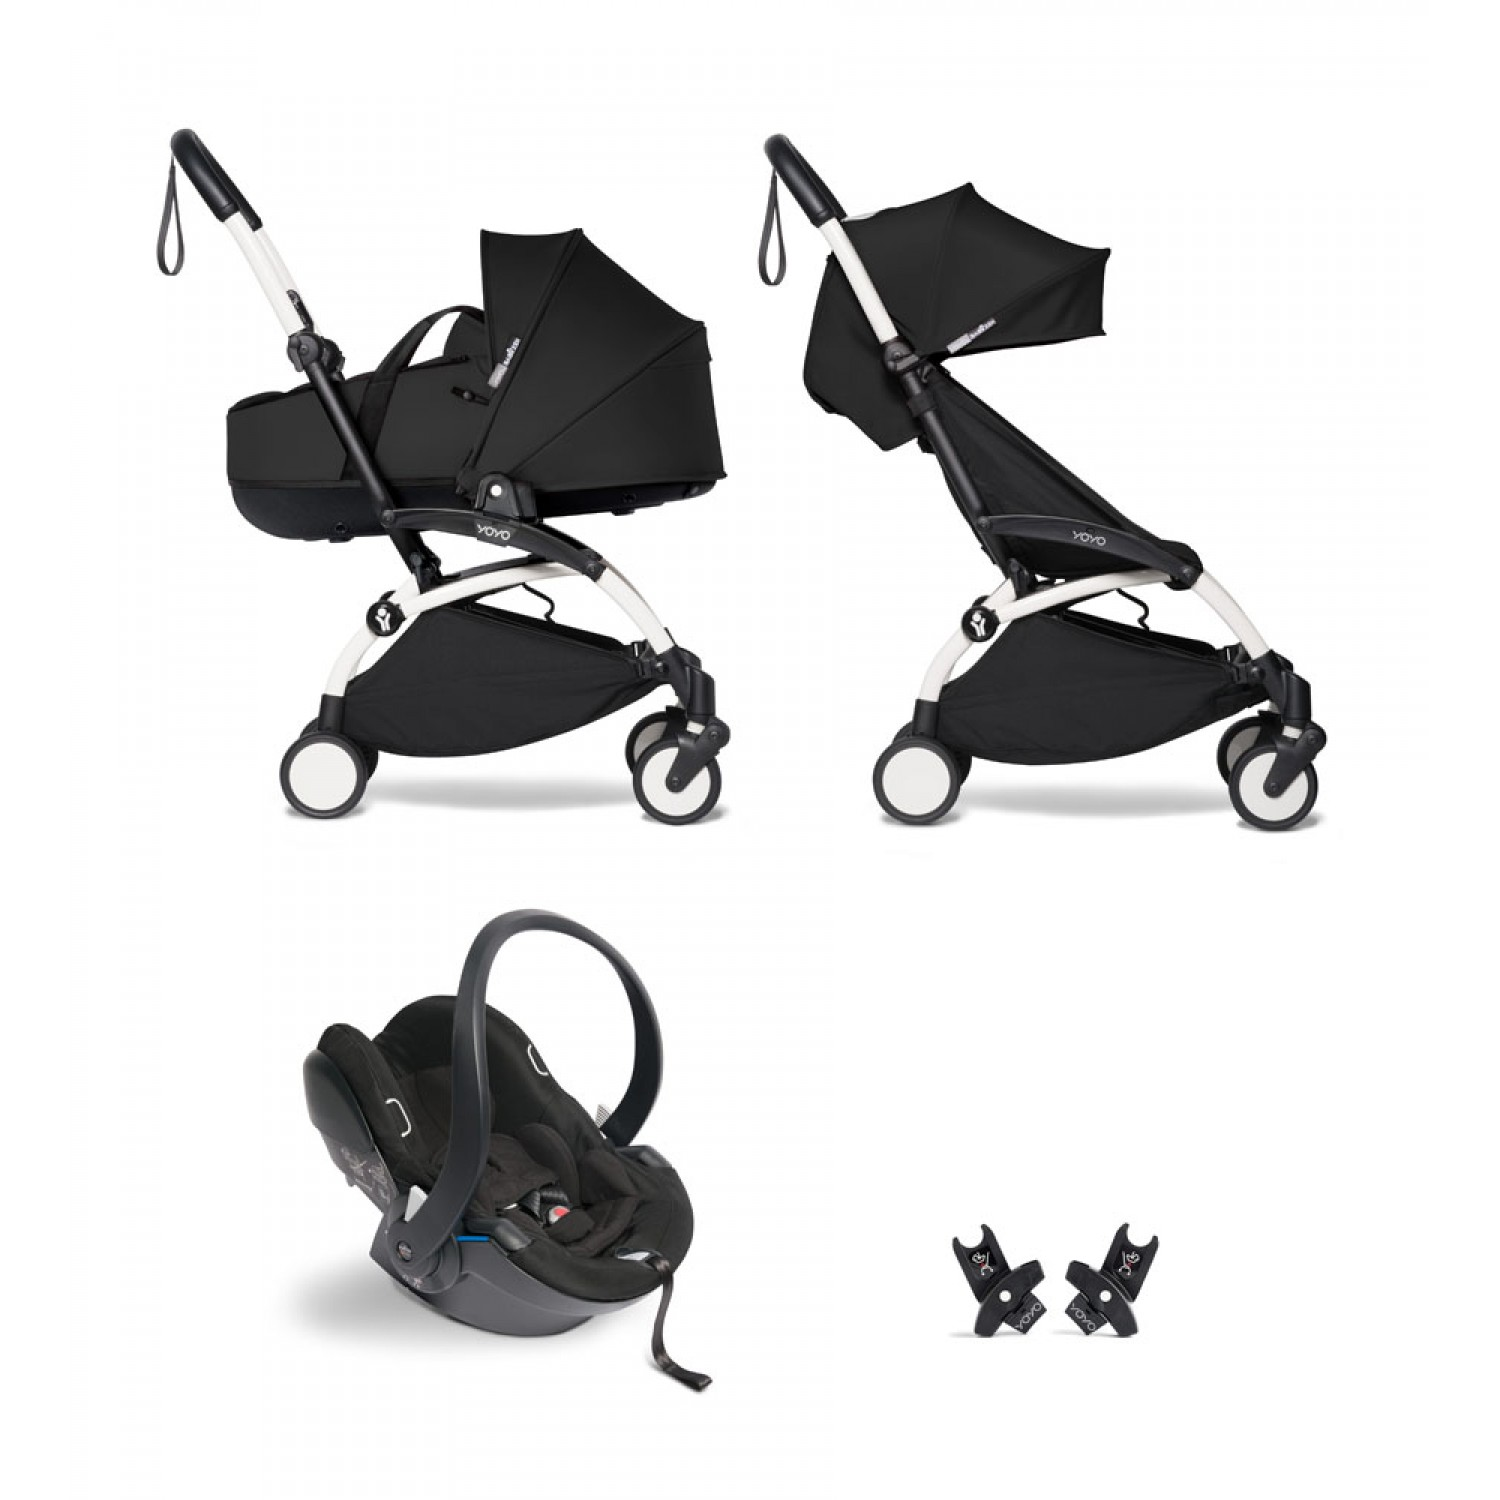 All-in-one BABYZEN stroller YOYO2 bassinet, car seat and 6+  White Frame | Black